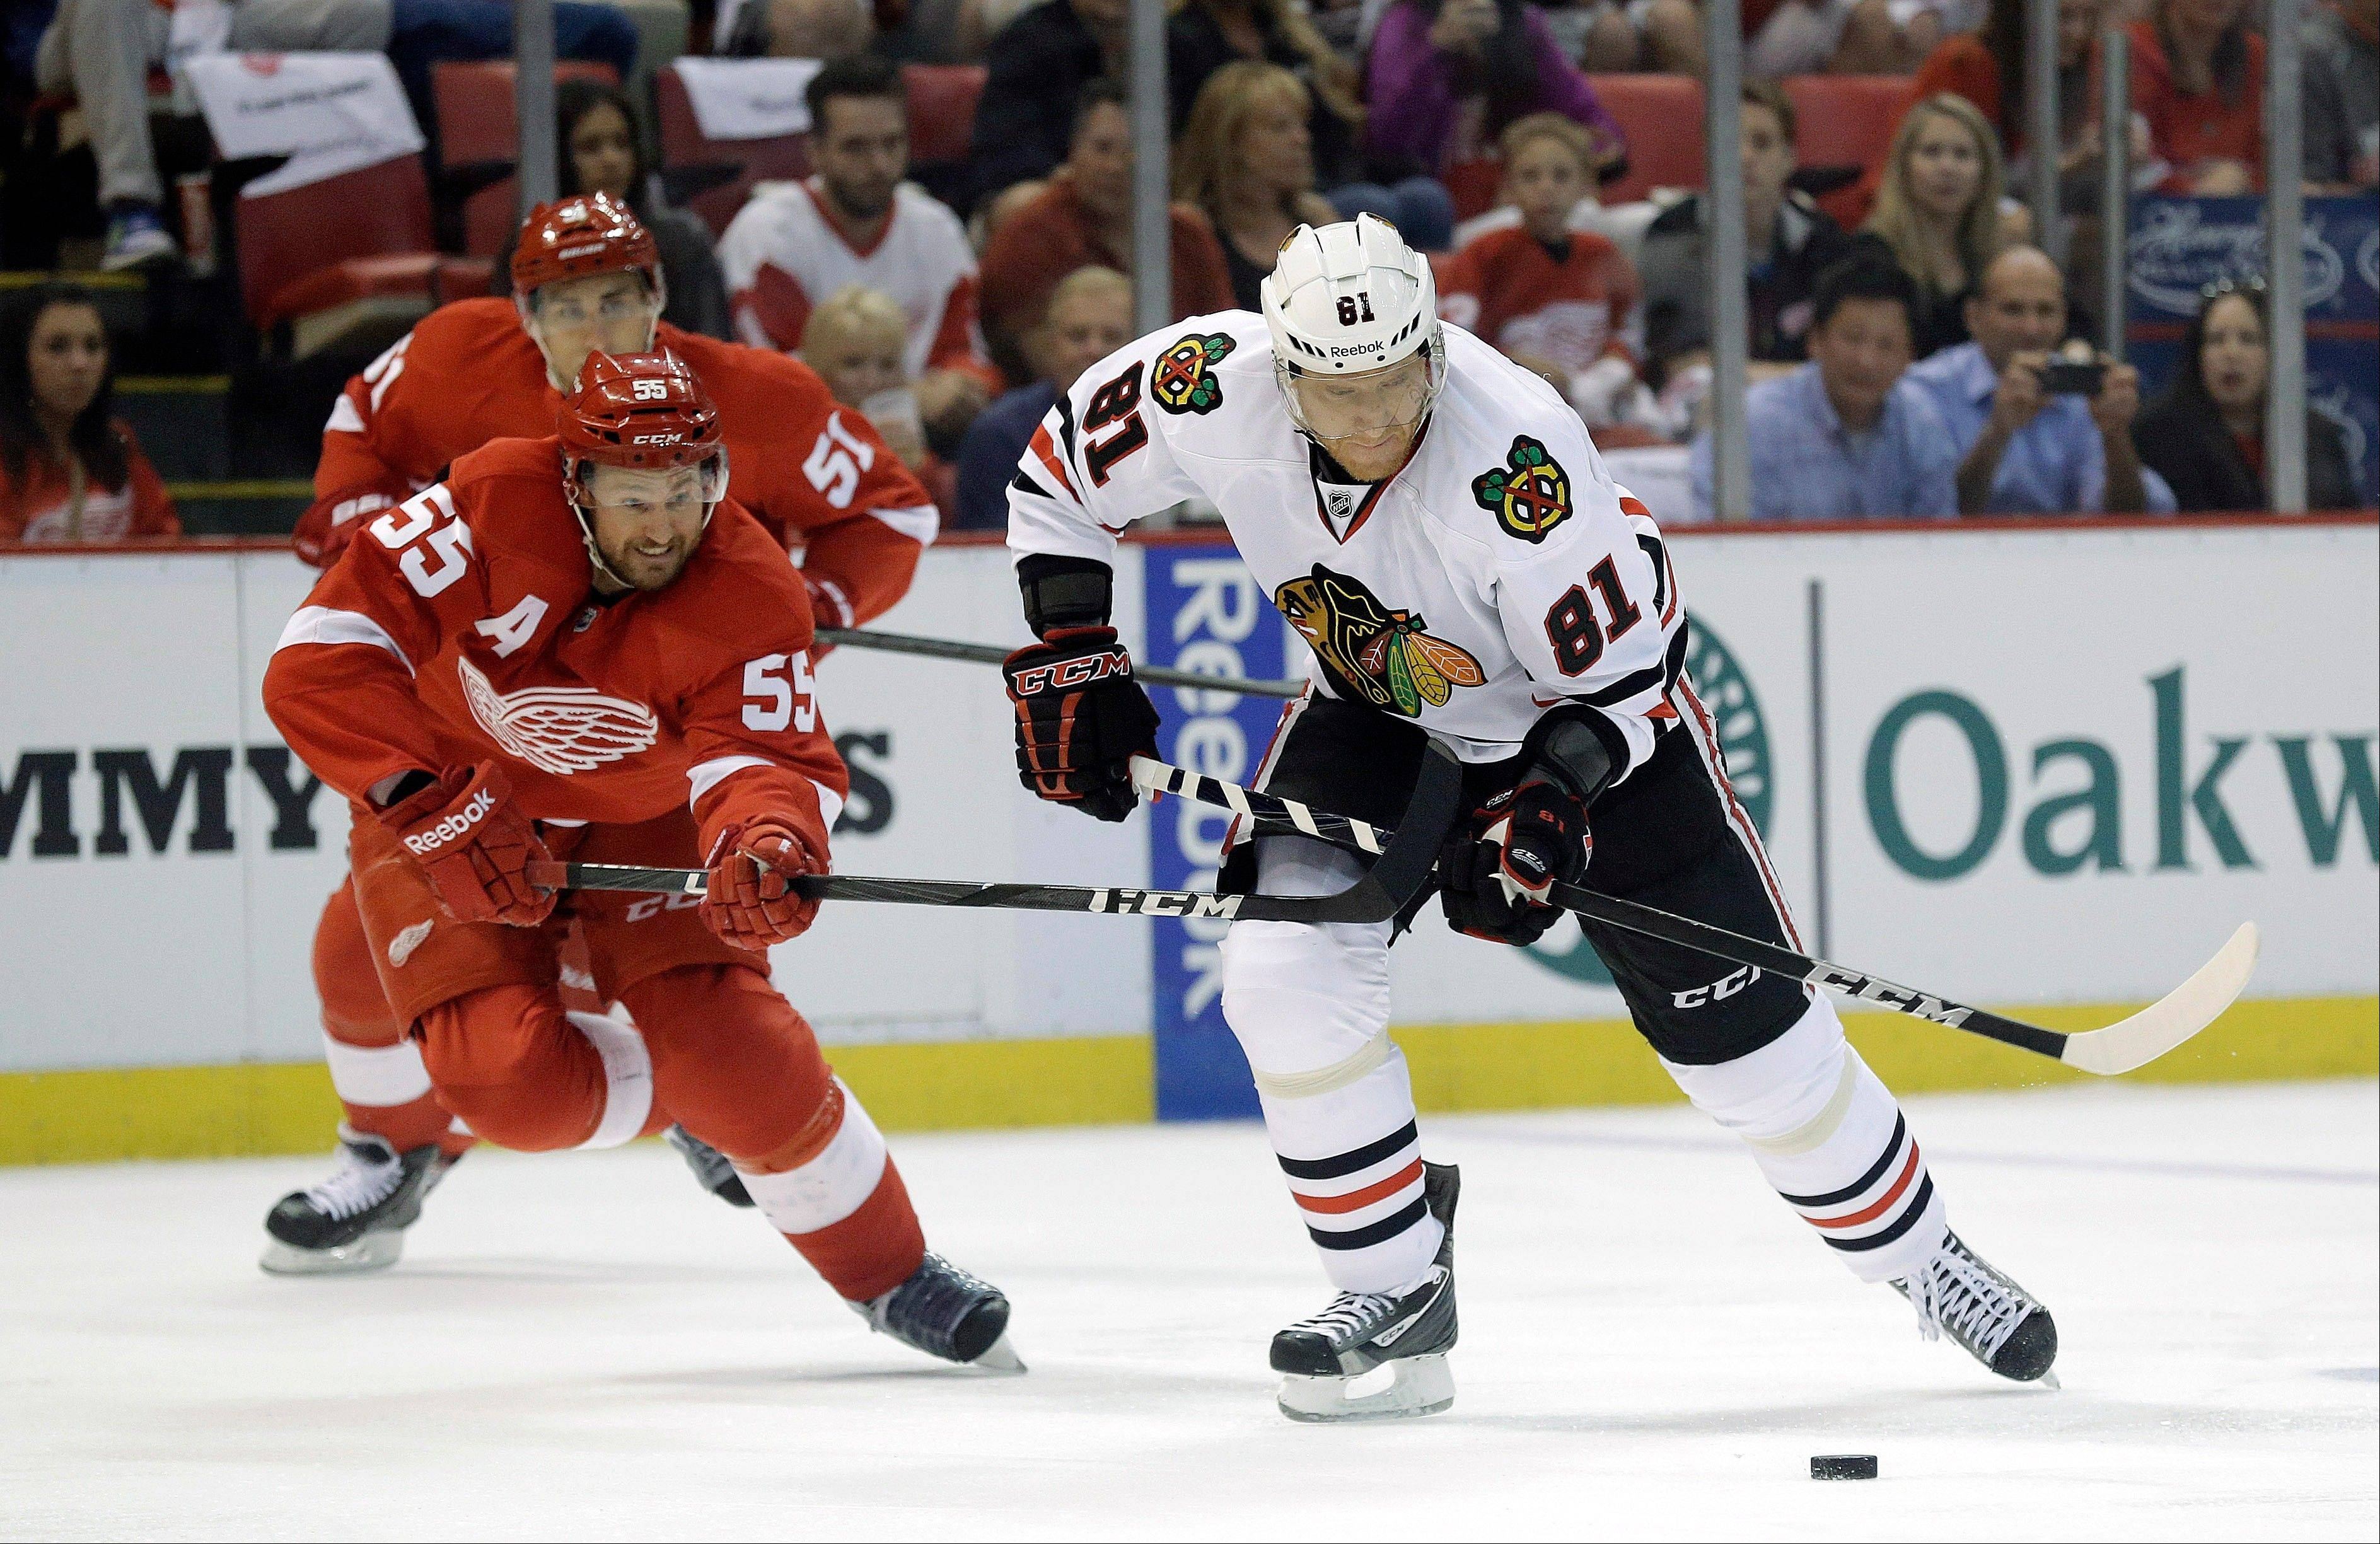 Detroit Red Wings defenseman Niklas Kronwall (55), of Sweden, tries to slow Chicago Blackhawks right wing Marian Hossa (81), of the Czech Republic, during the first period of an NHL hockey Stanley Cup playoffs Western Conference semifinal game in Detroit, Monday, May 20, 2013.